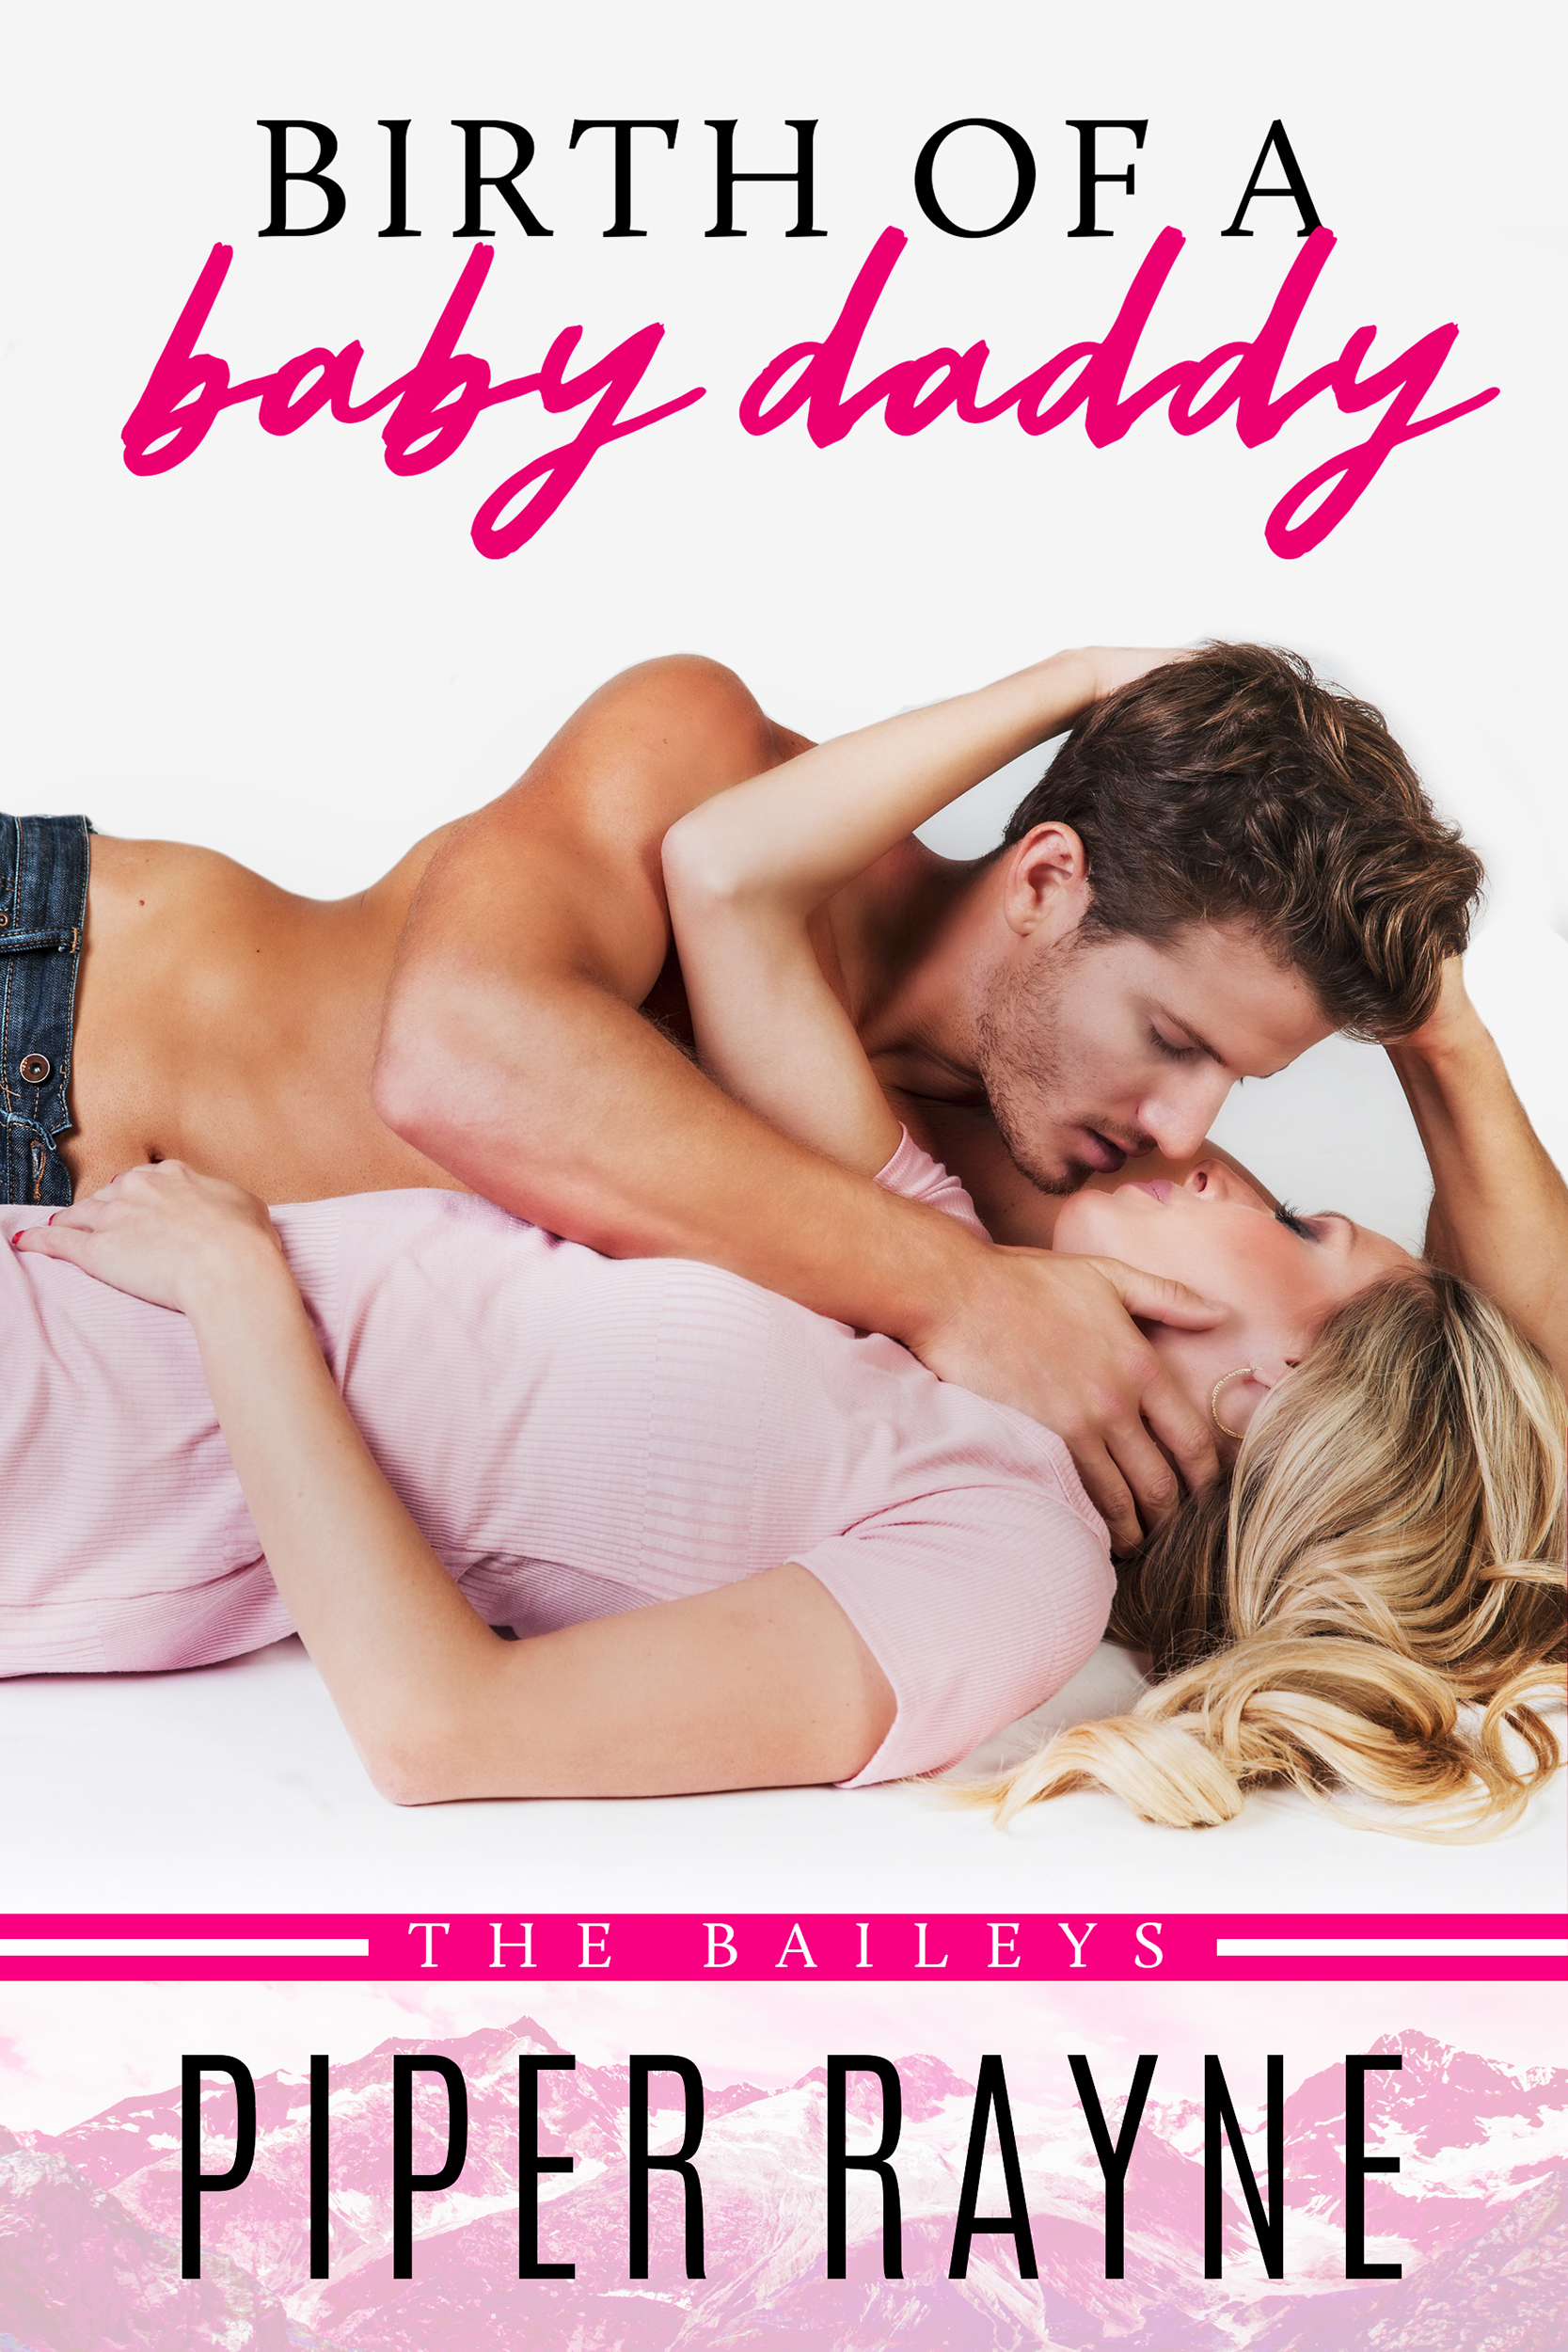 #RSFave & Review | Birth of a Baby Daddy by Piper Rayne